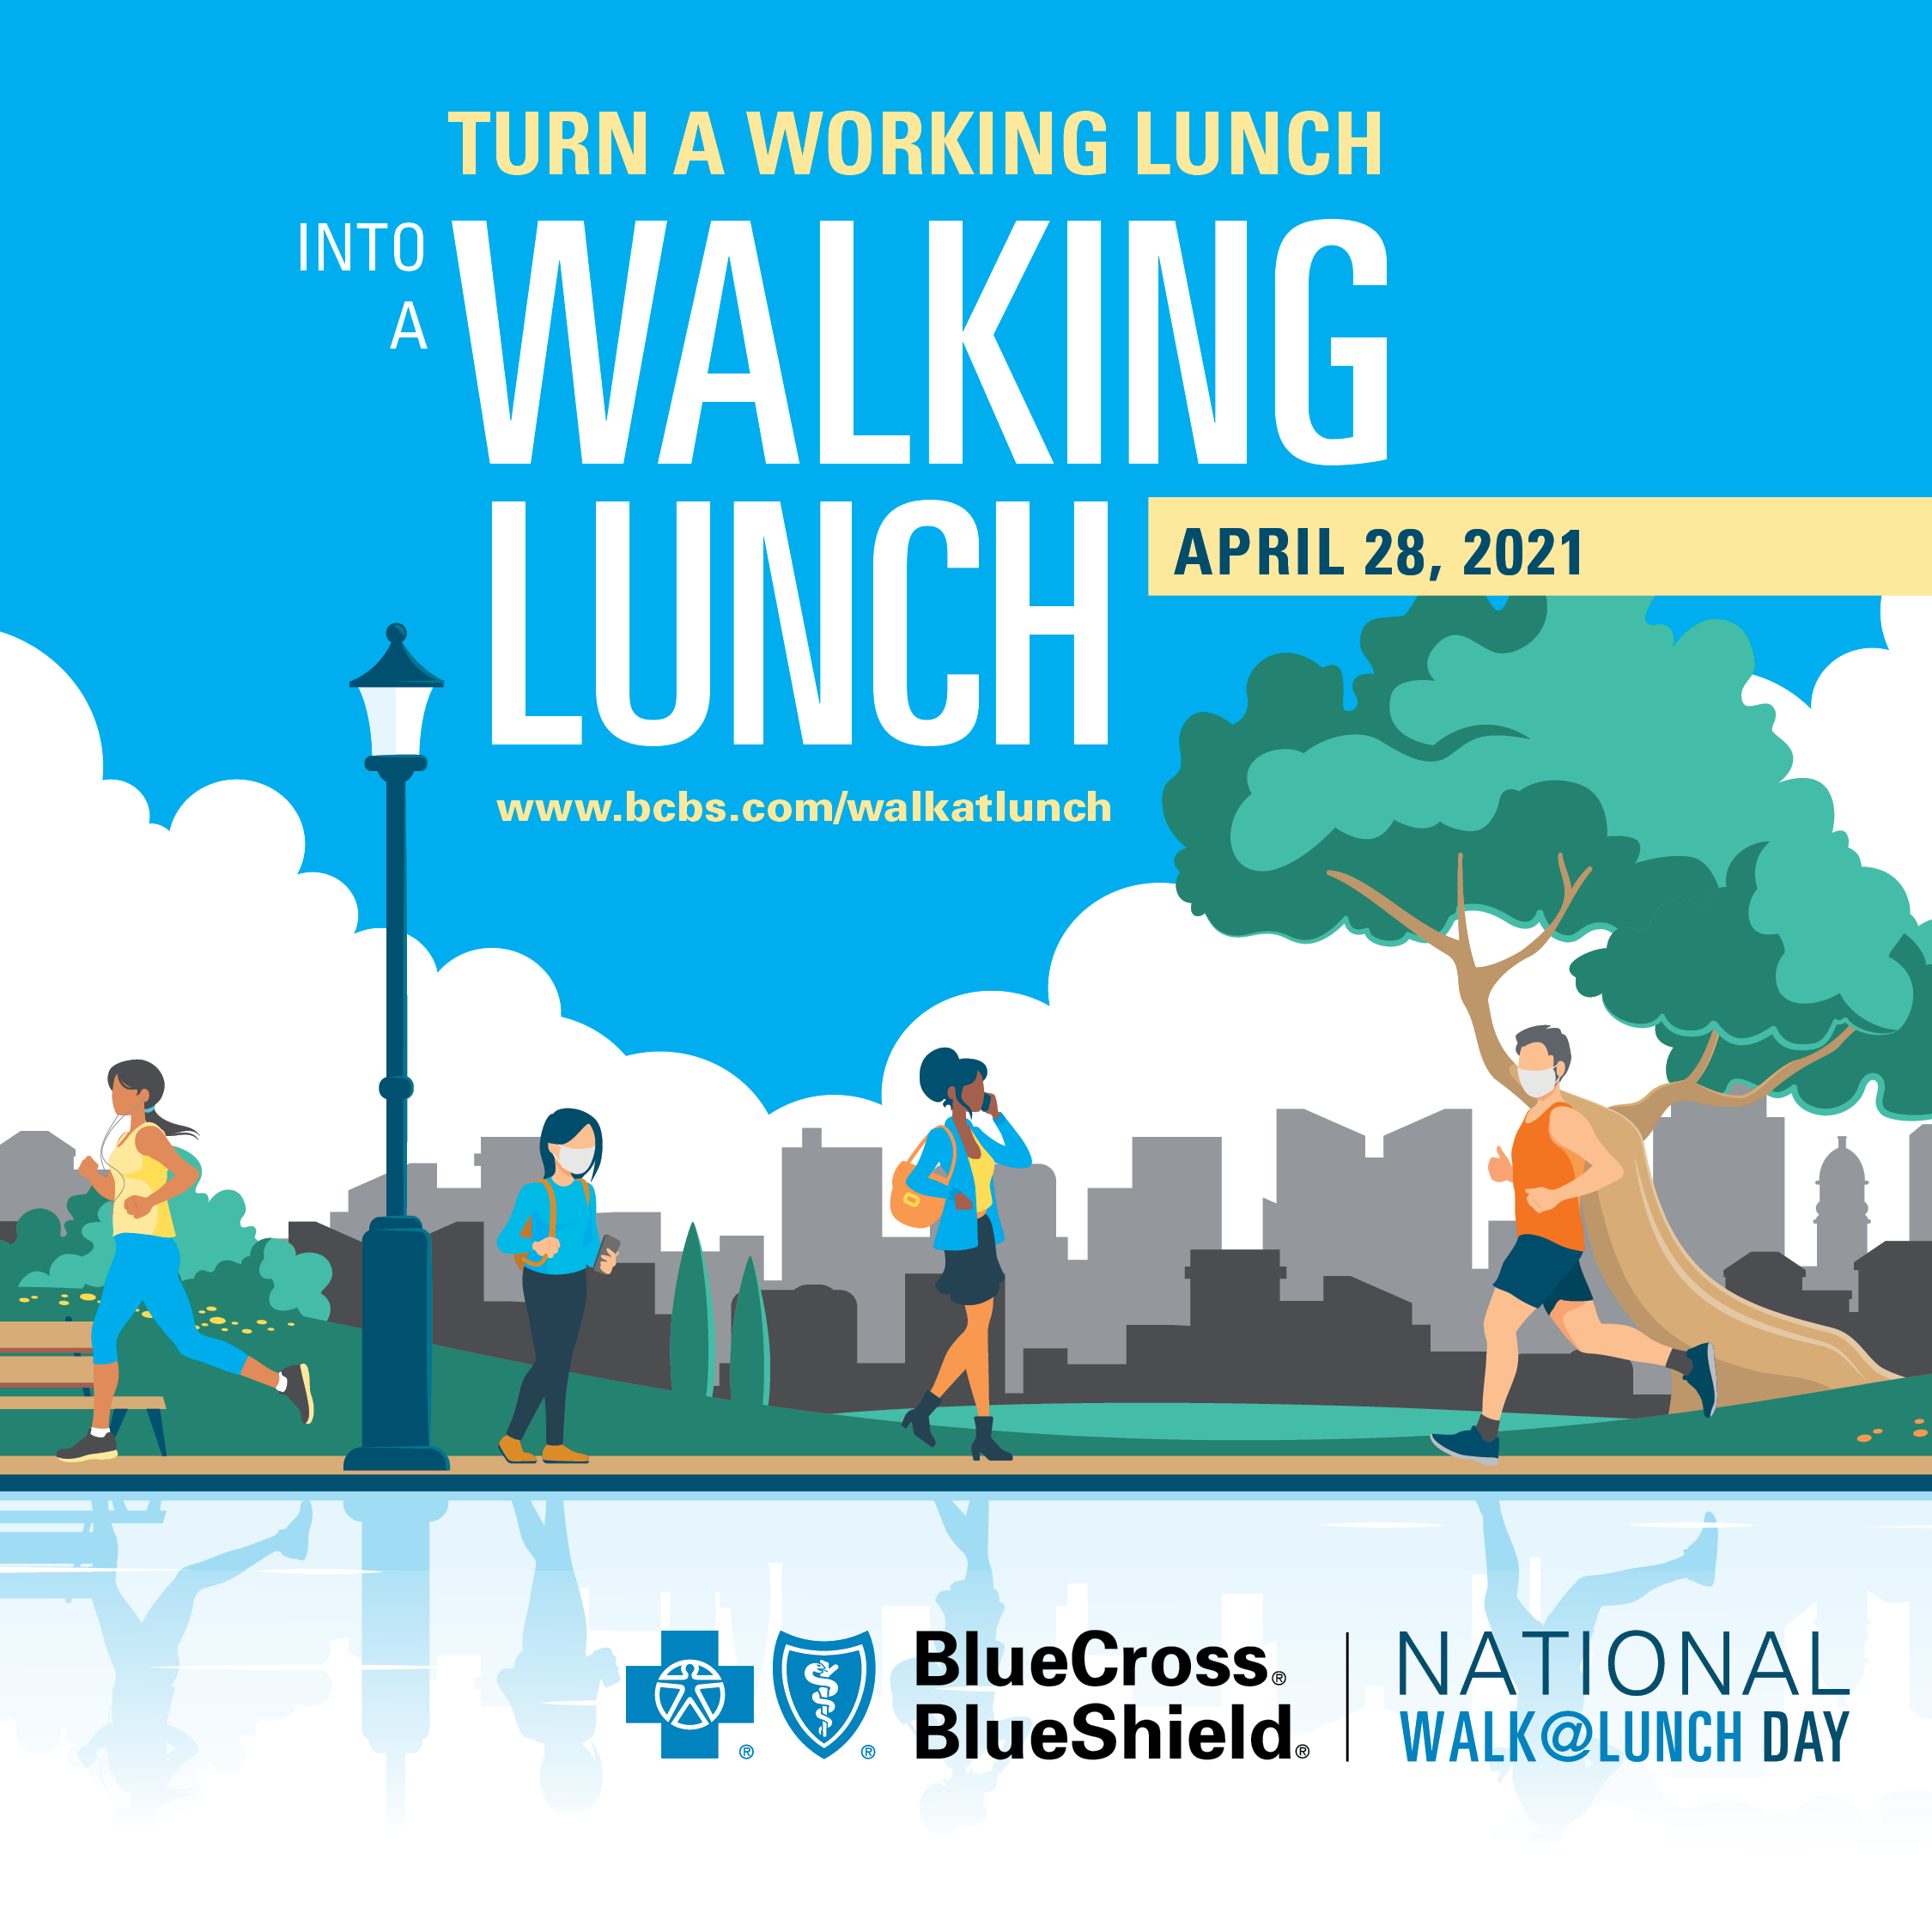 2021 National Walk at Lunch Day